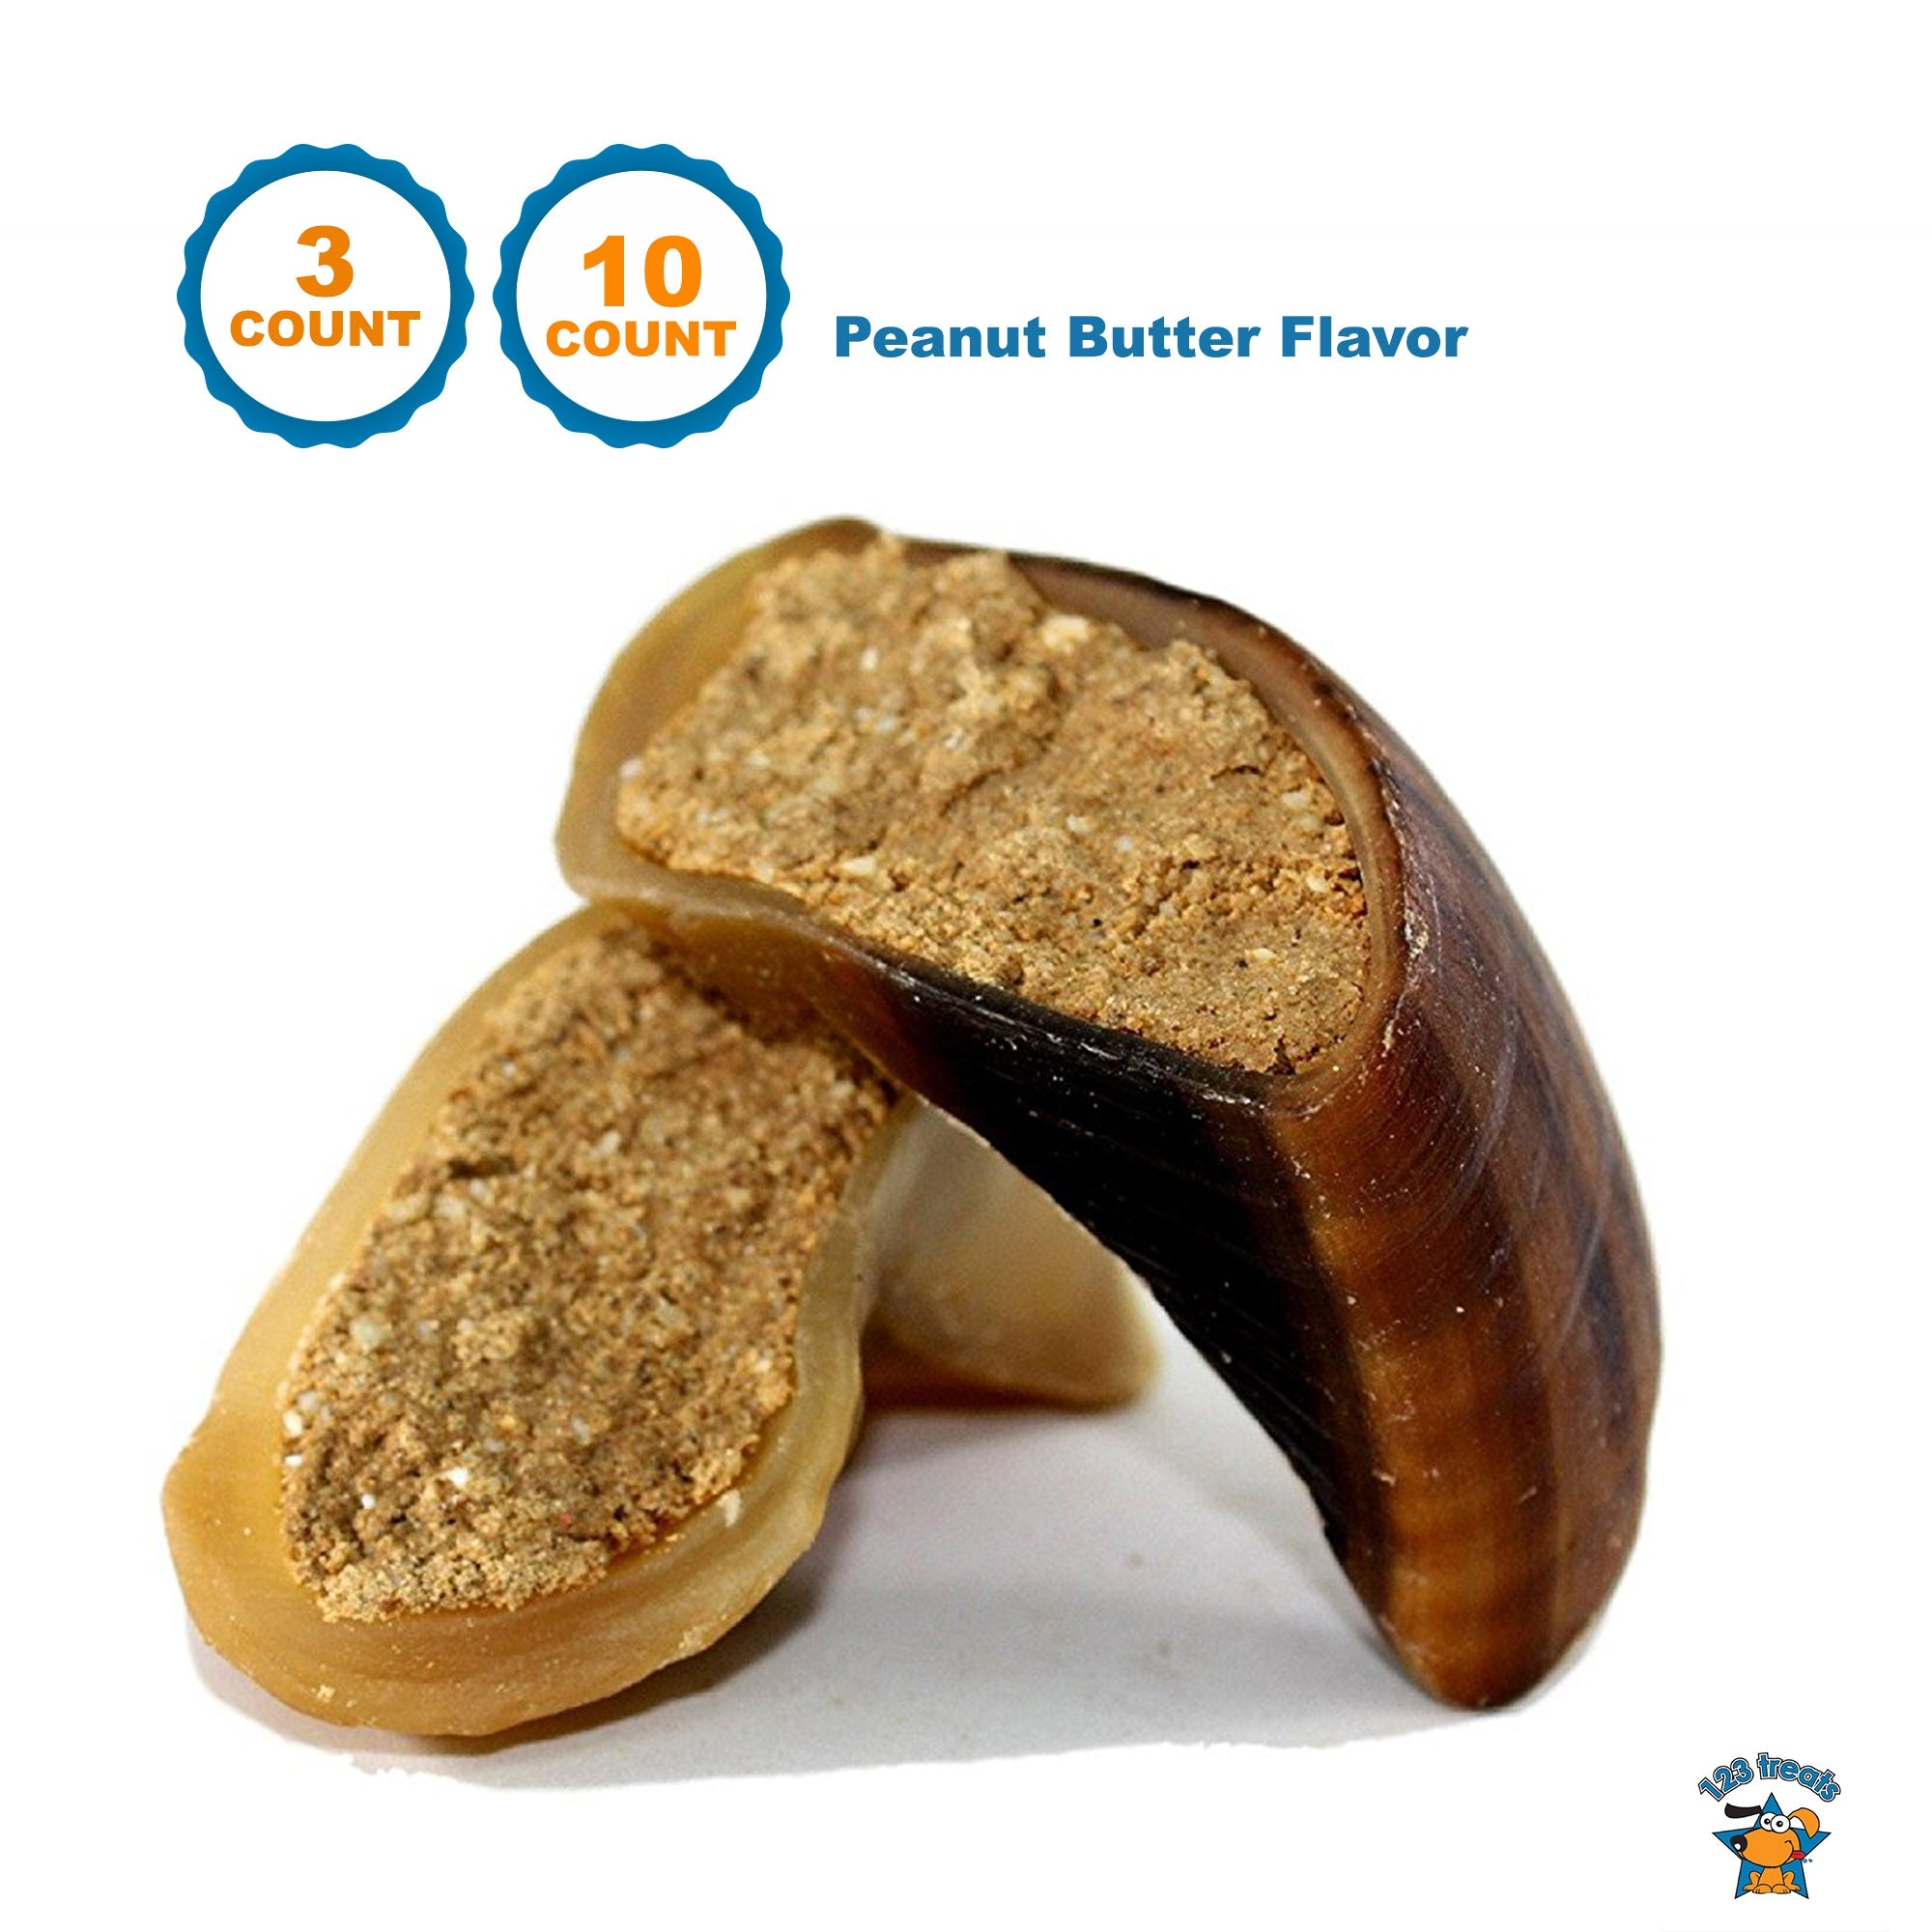 PEANUT BUTTER FILLED COW HOOVES 3 or 10 Count - 100% Natural Dog Dental Treats | Beef Hoof From 123 Treats